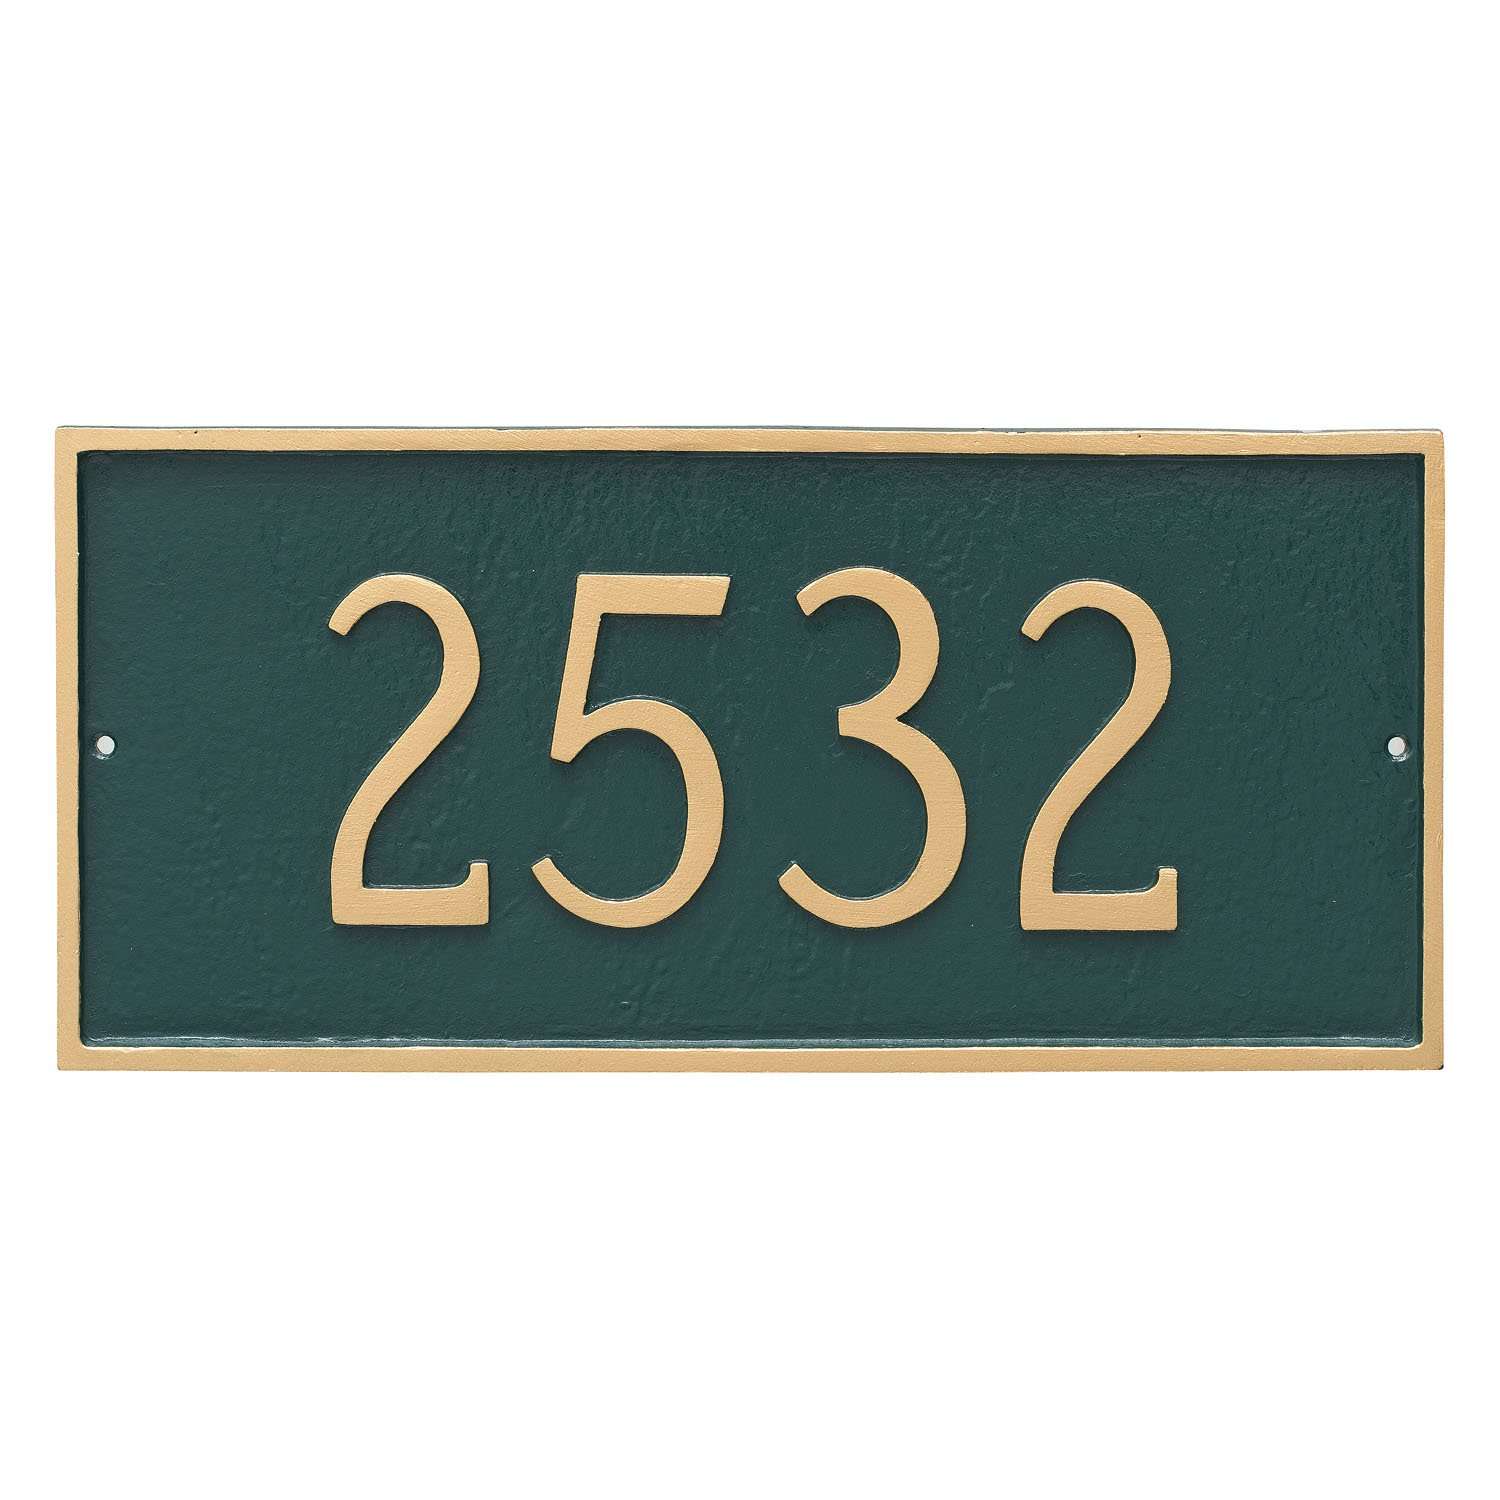 Montague Metal 10'' x 21'' Classic Rectangle One Line Address Sign Plaque, Large, Aged Bronze/Gold by Montague Metal